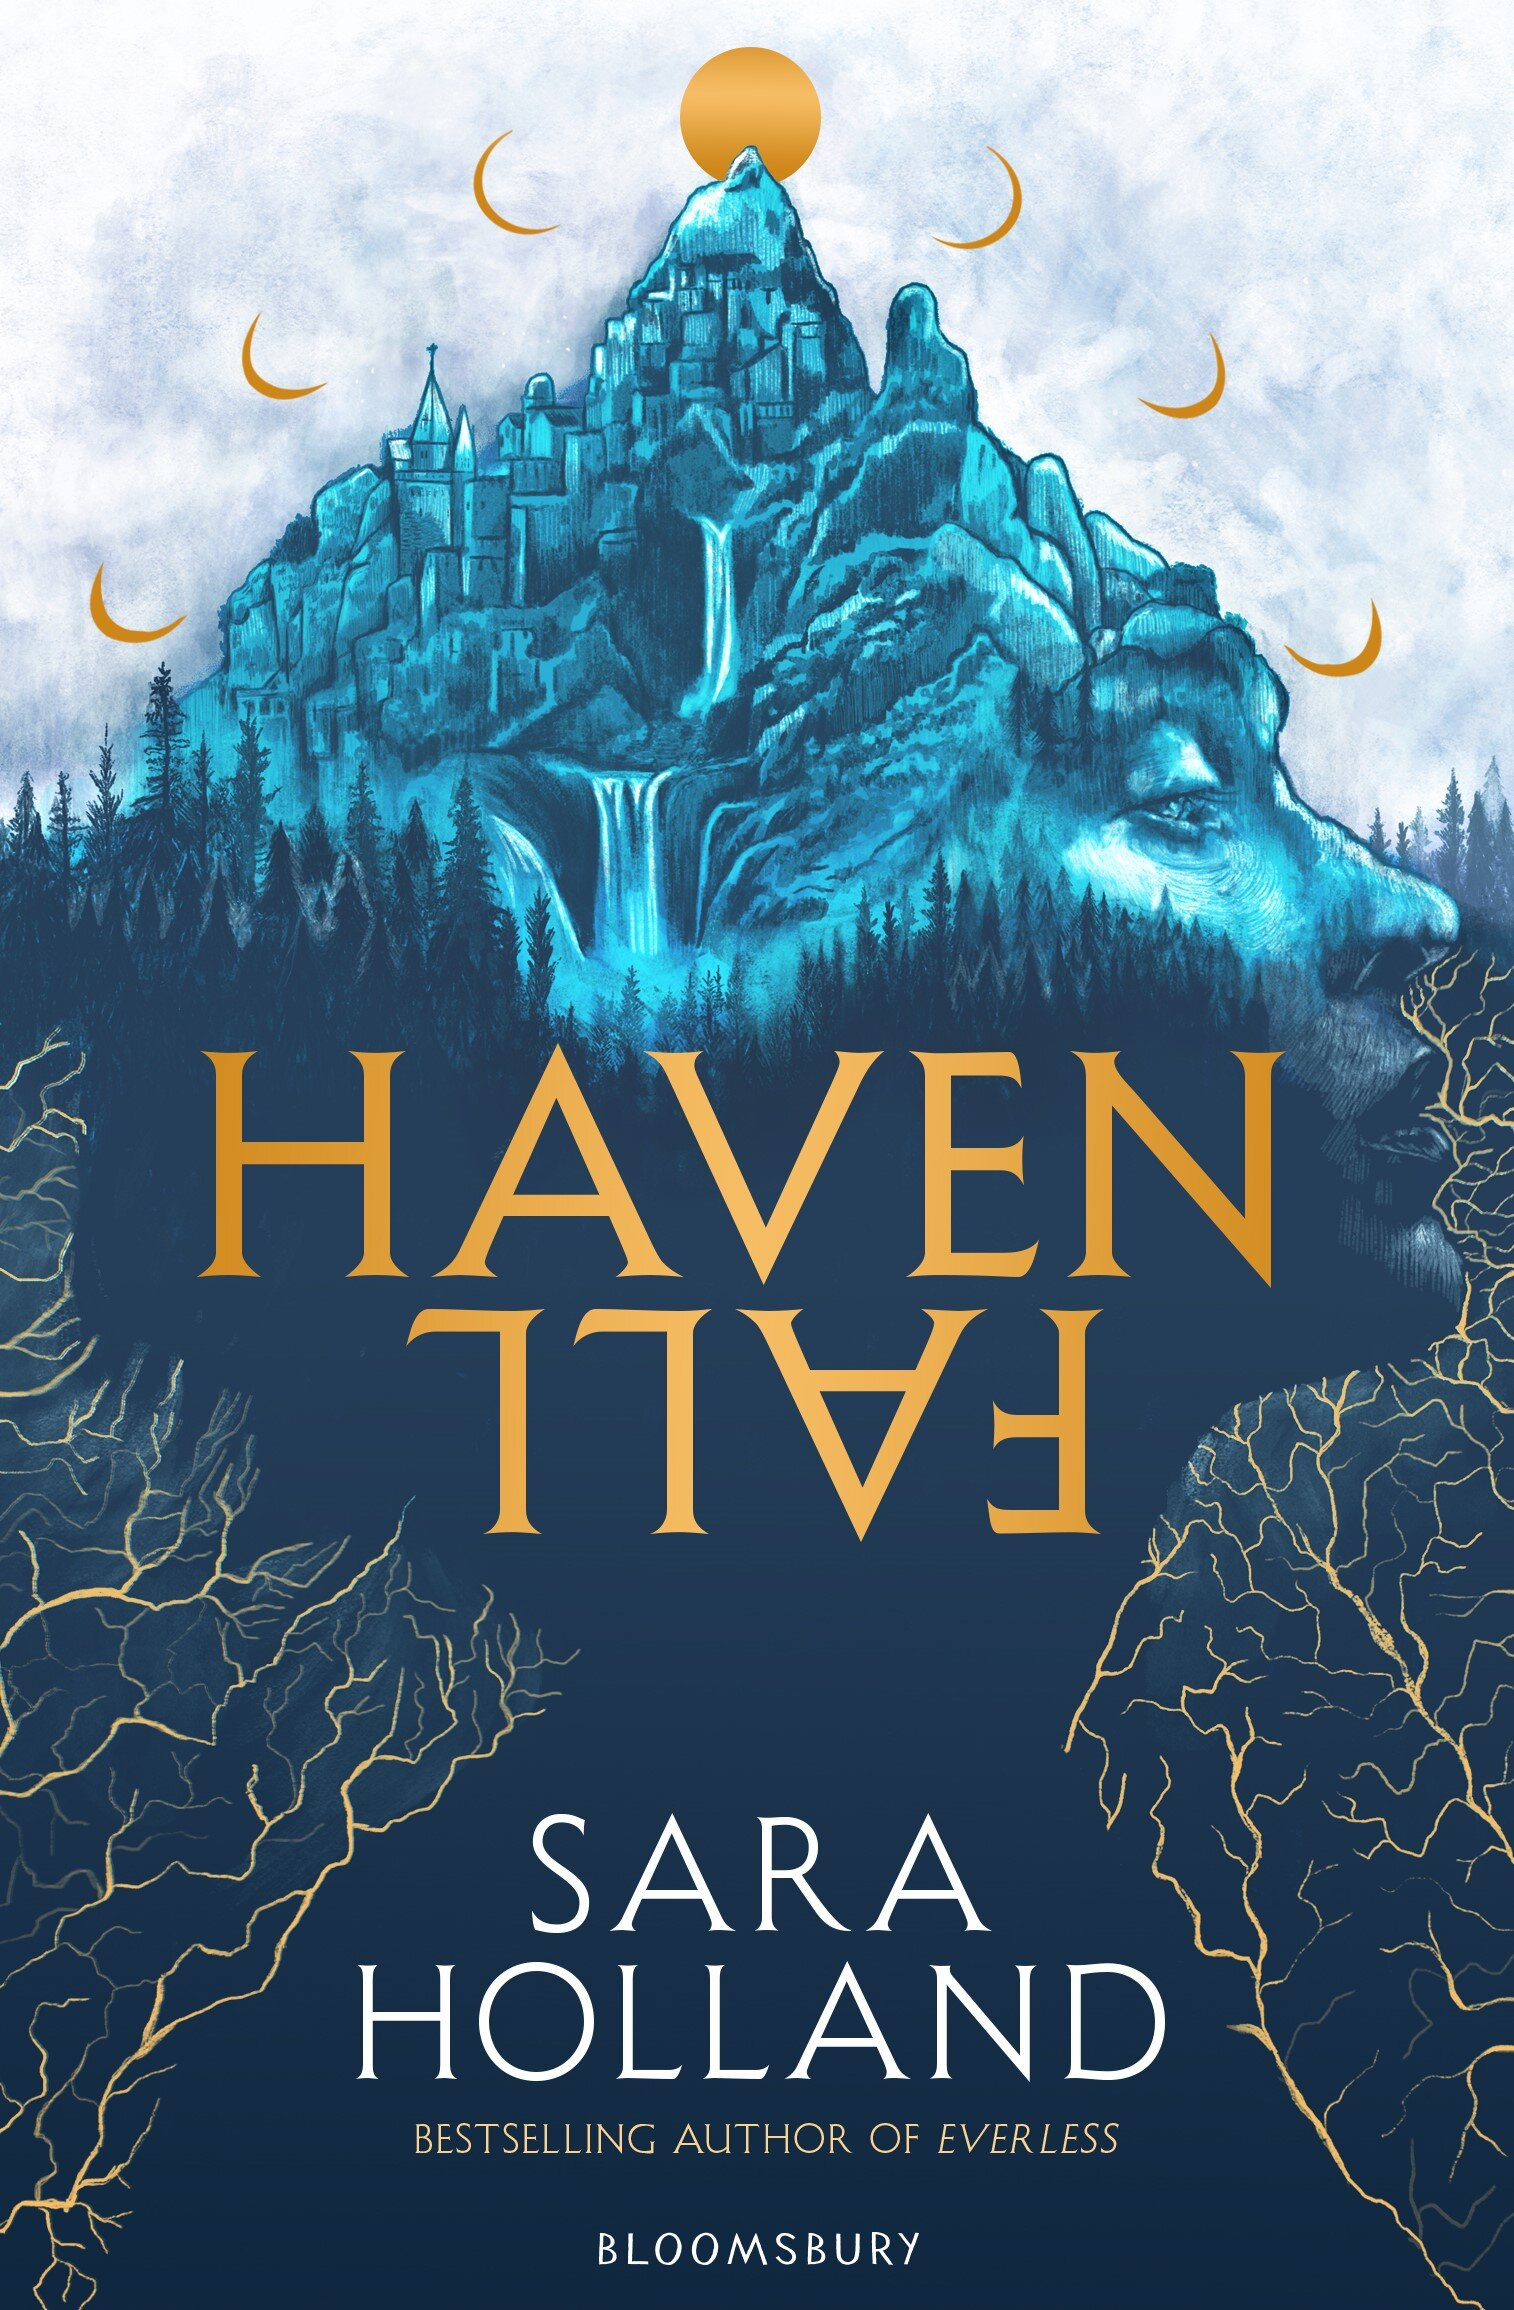 Behold the stunning UK/ANZ cover for HAVENFALL! Thank you so much to Peter Strain for creating this beautiful jacket. This edition will be out in paperback on March 3rd, 2020 and you can preorder it  here !